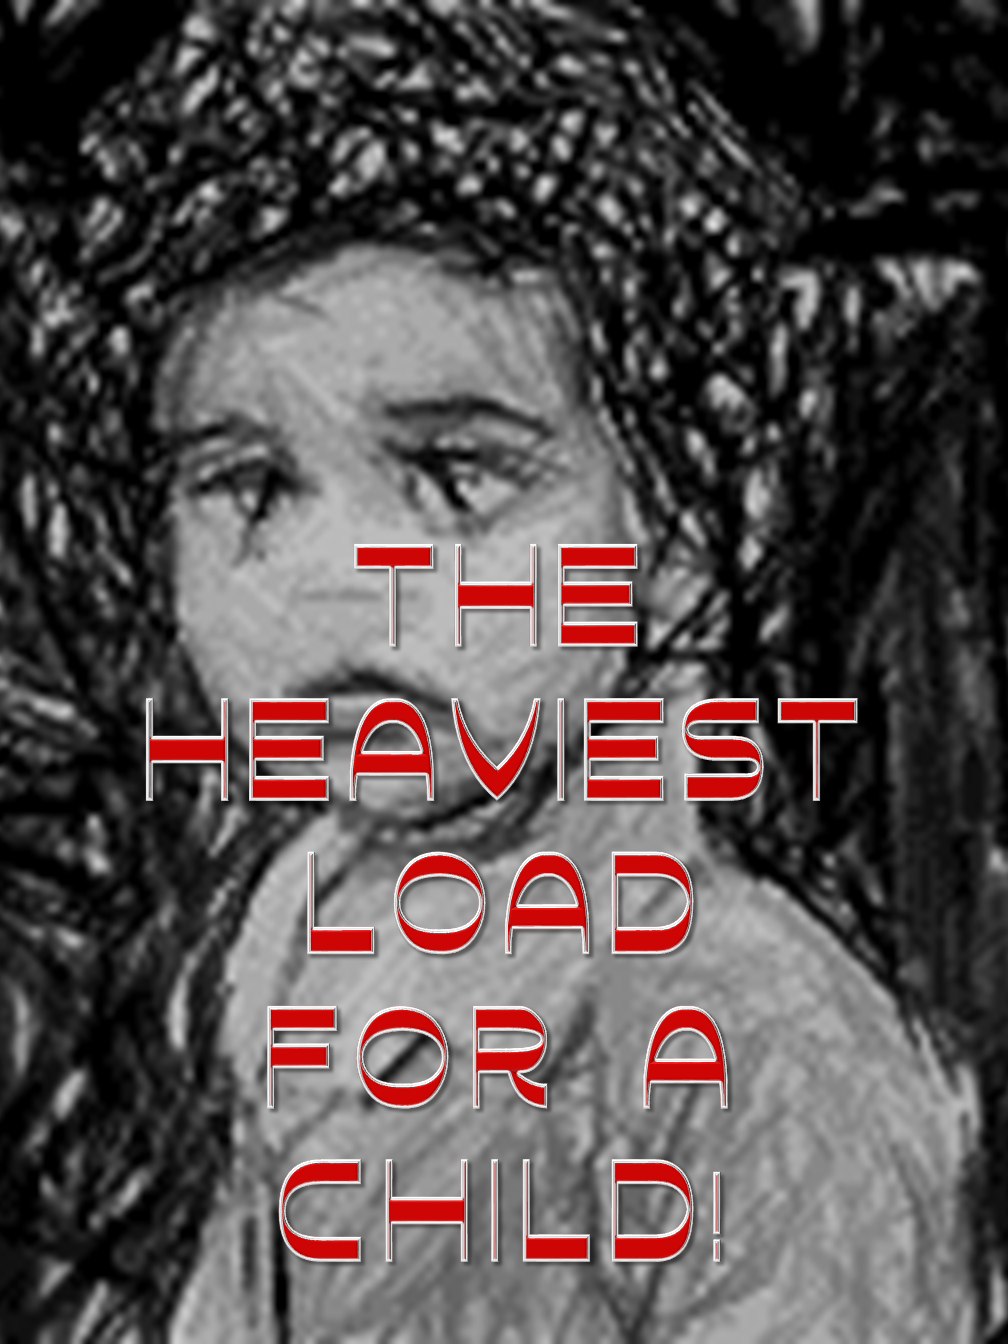 The Heaviest Load